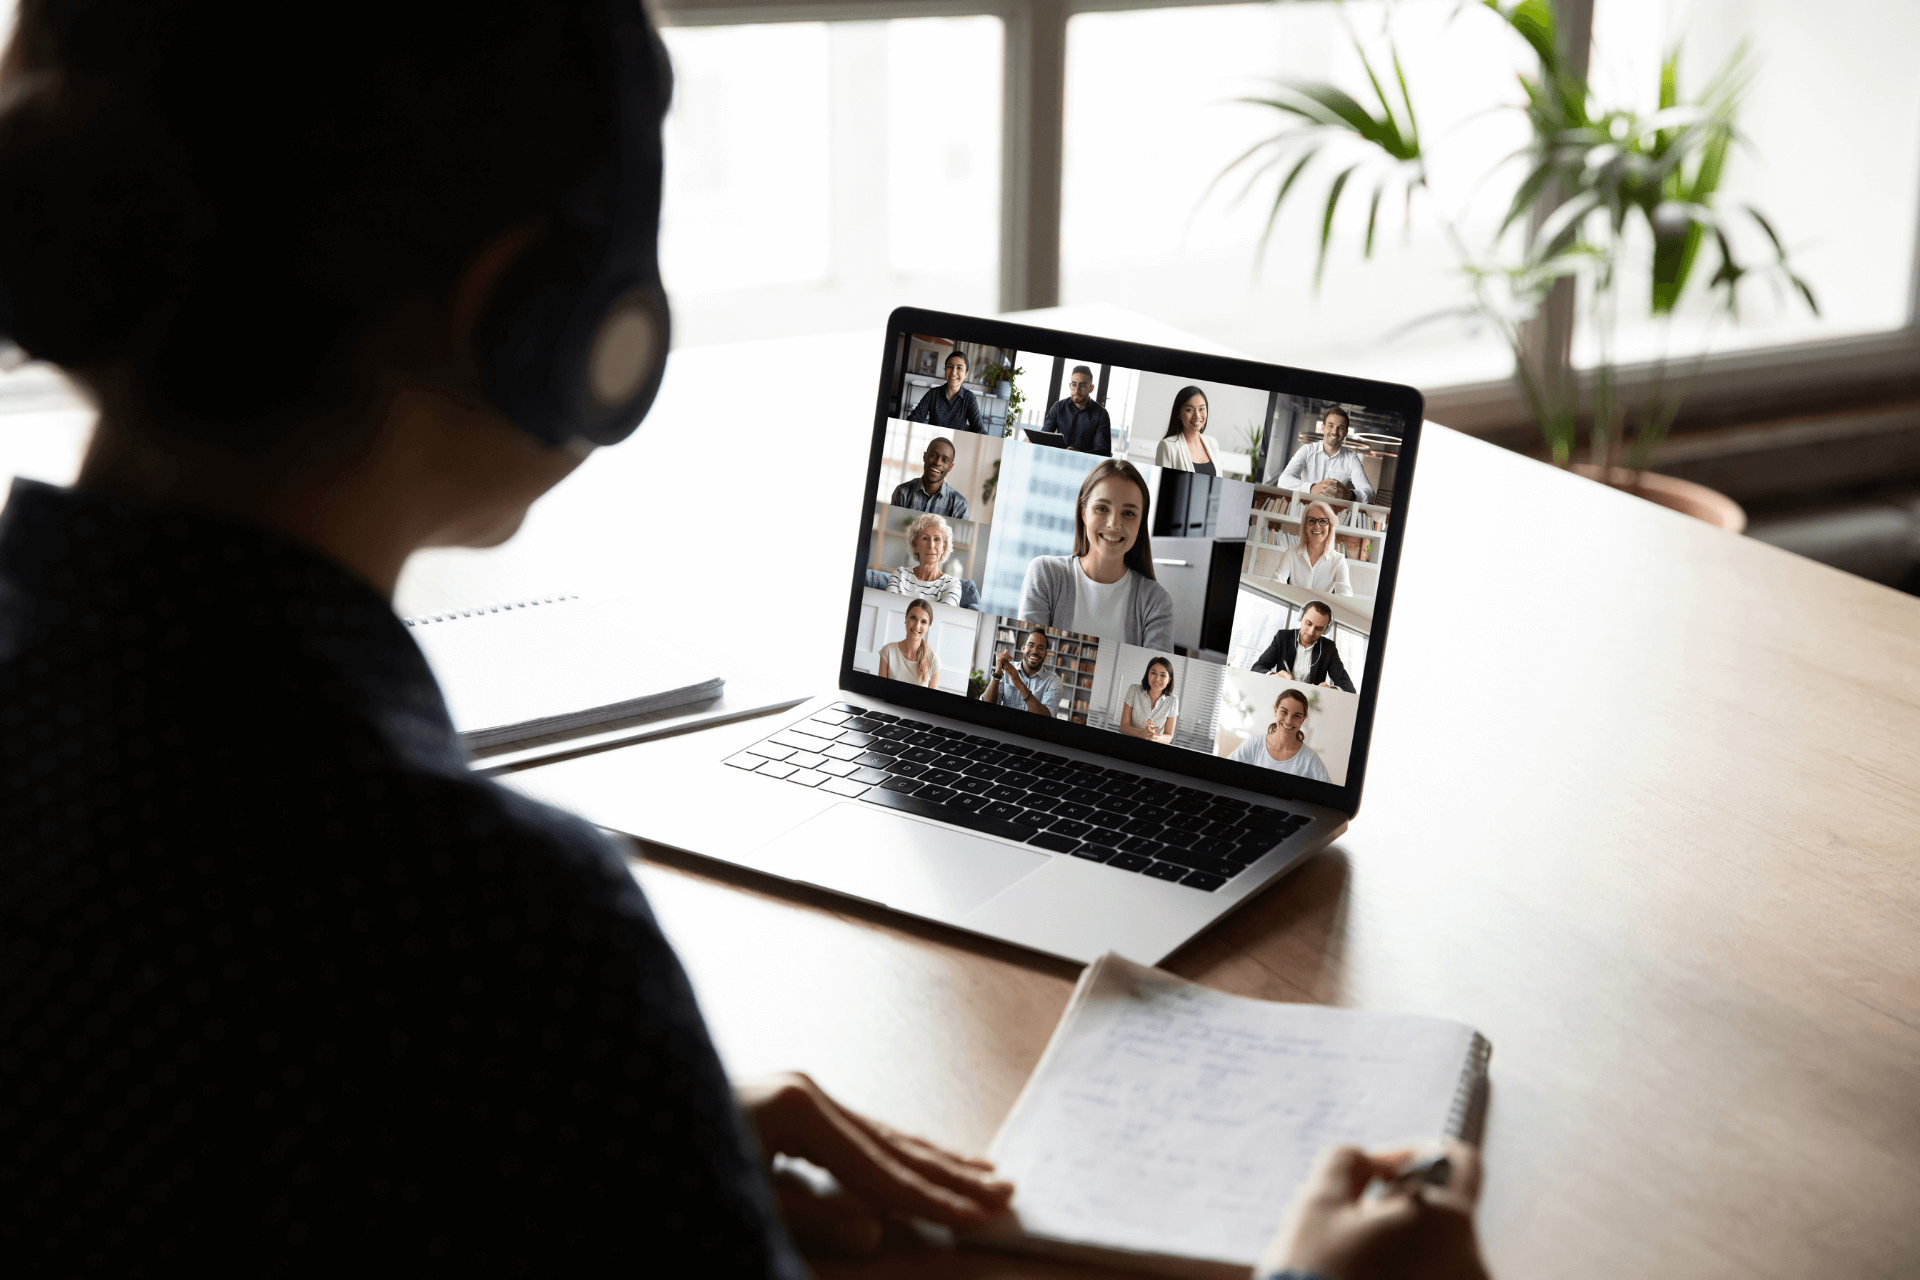 A woman is part of a virtual group call